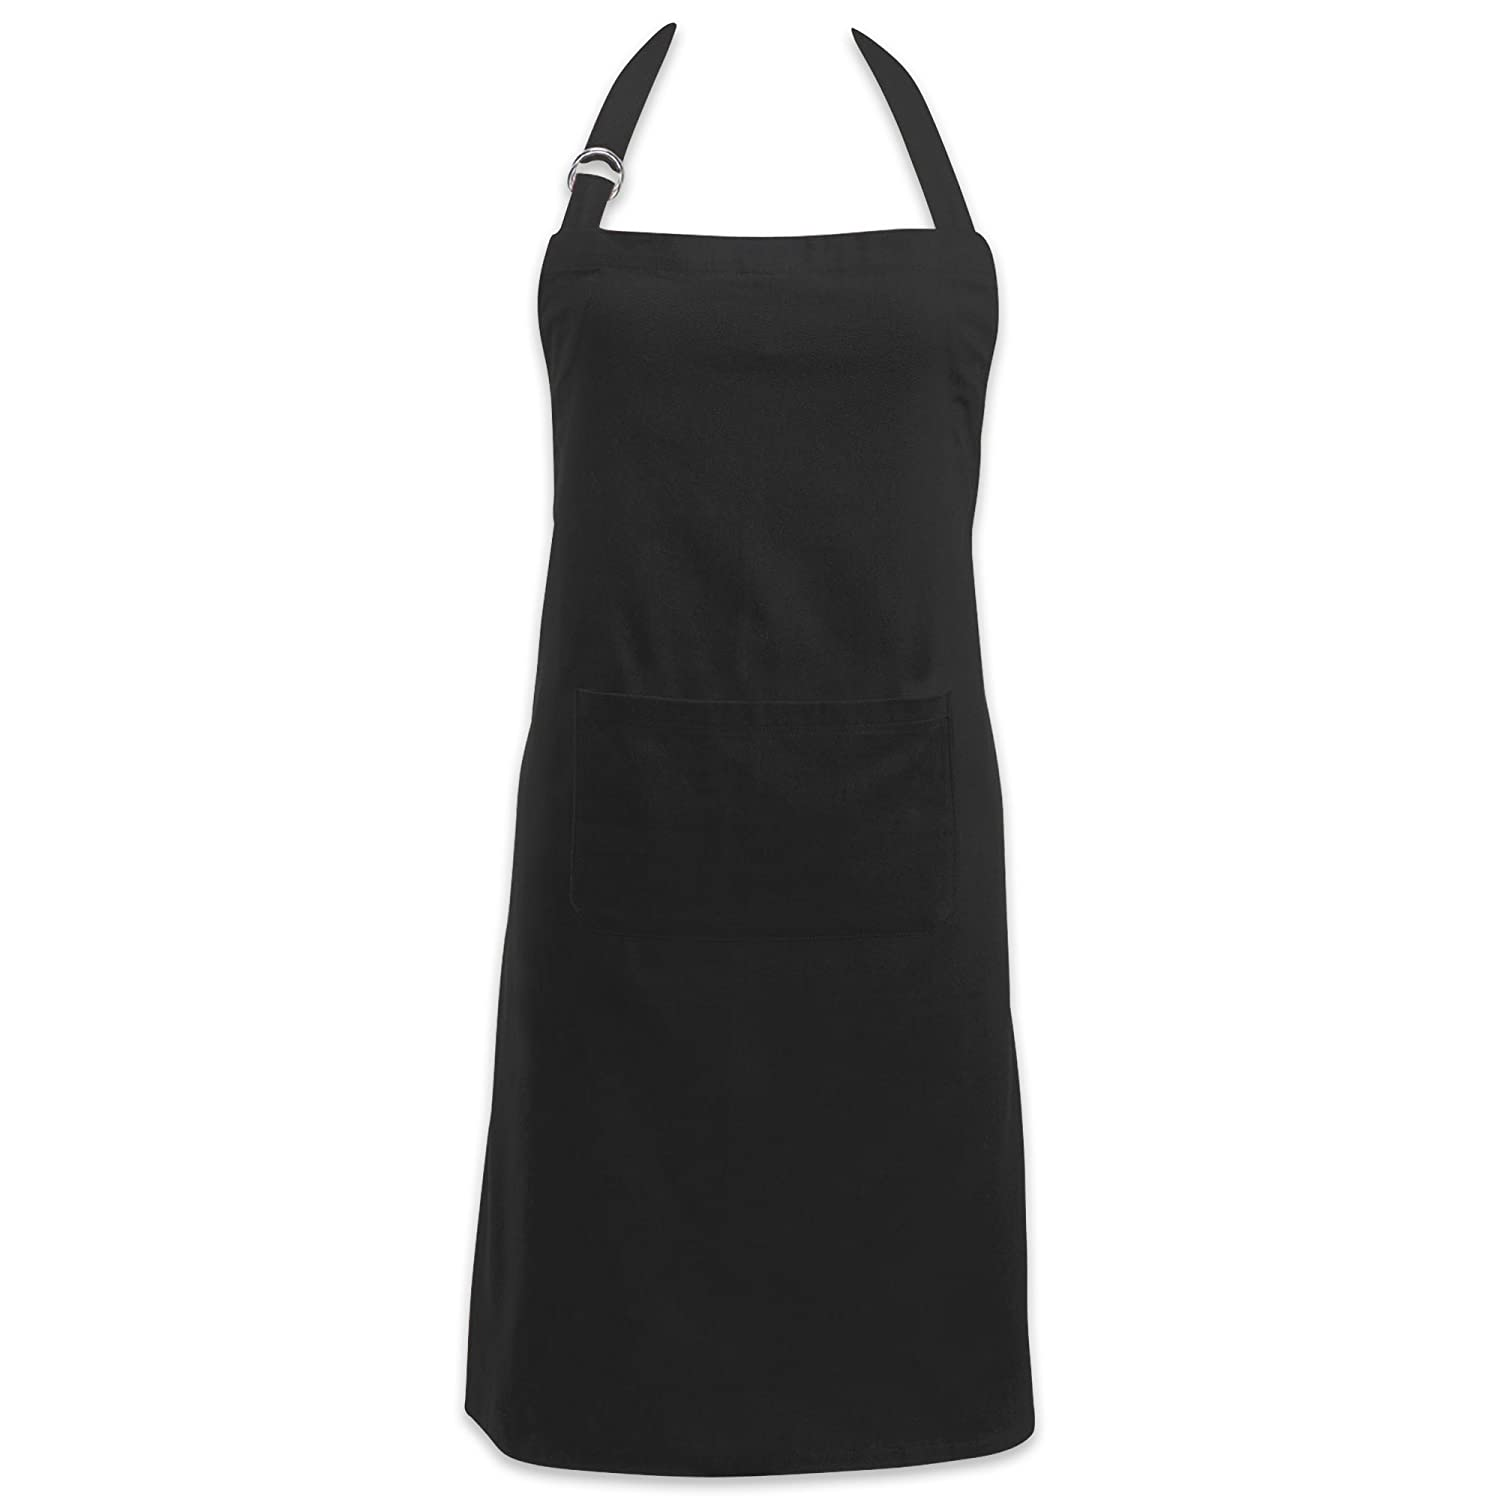 Amazon.ca: Aprons - Kitchen & Table Linens: Home & Kitchen